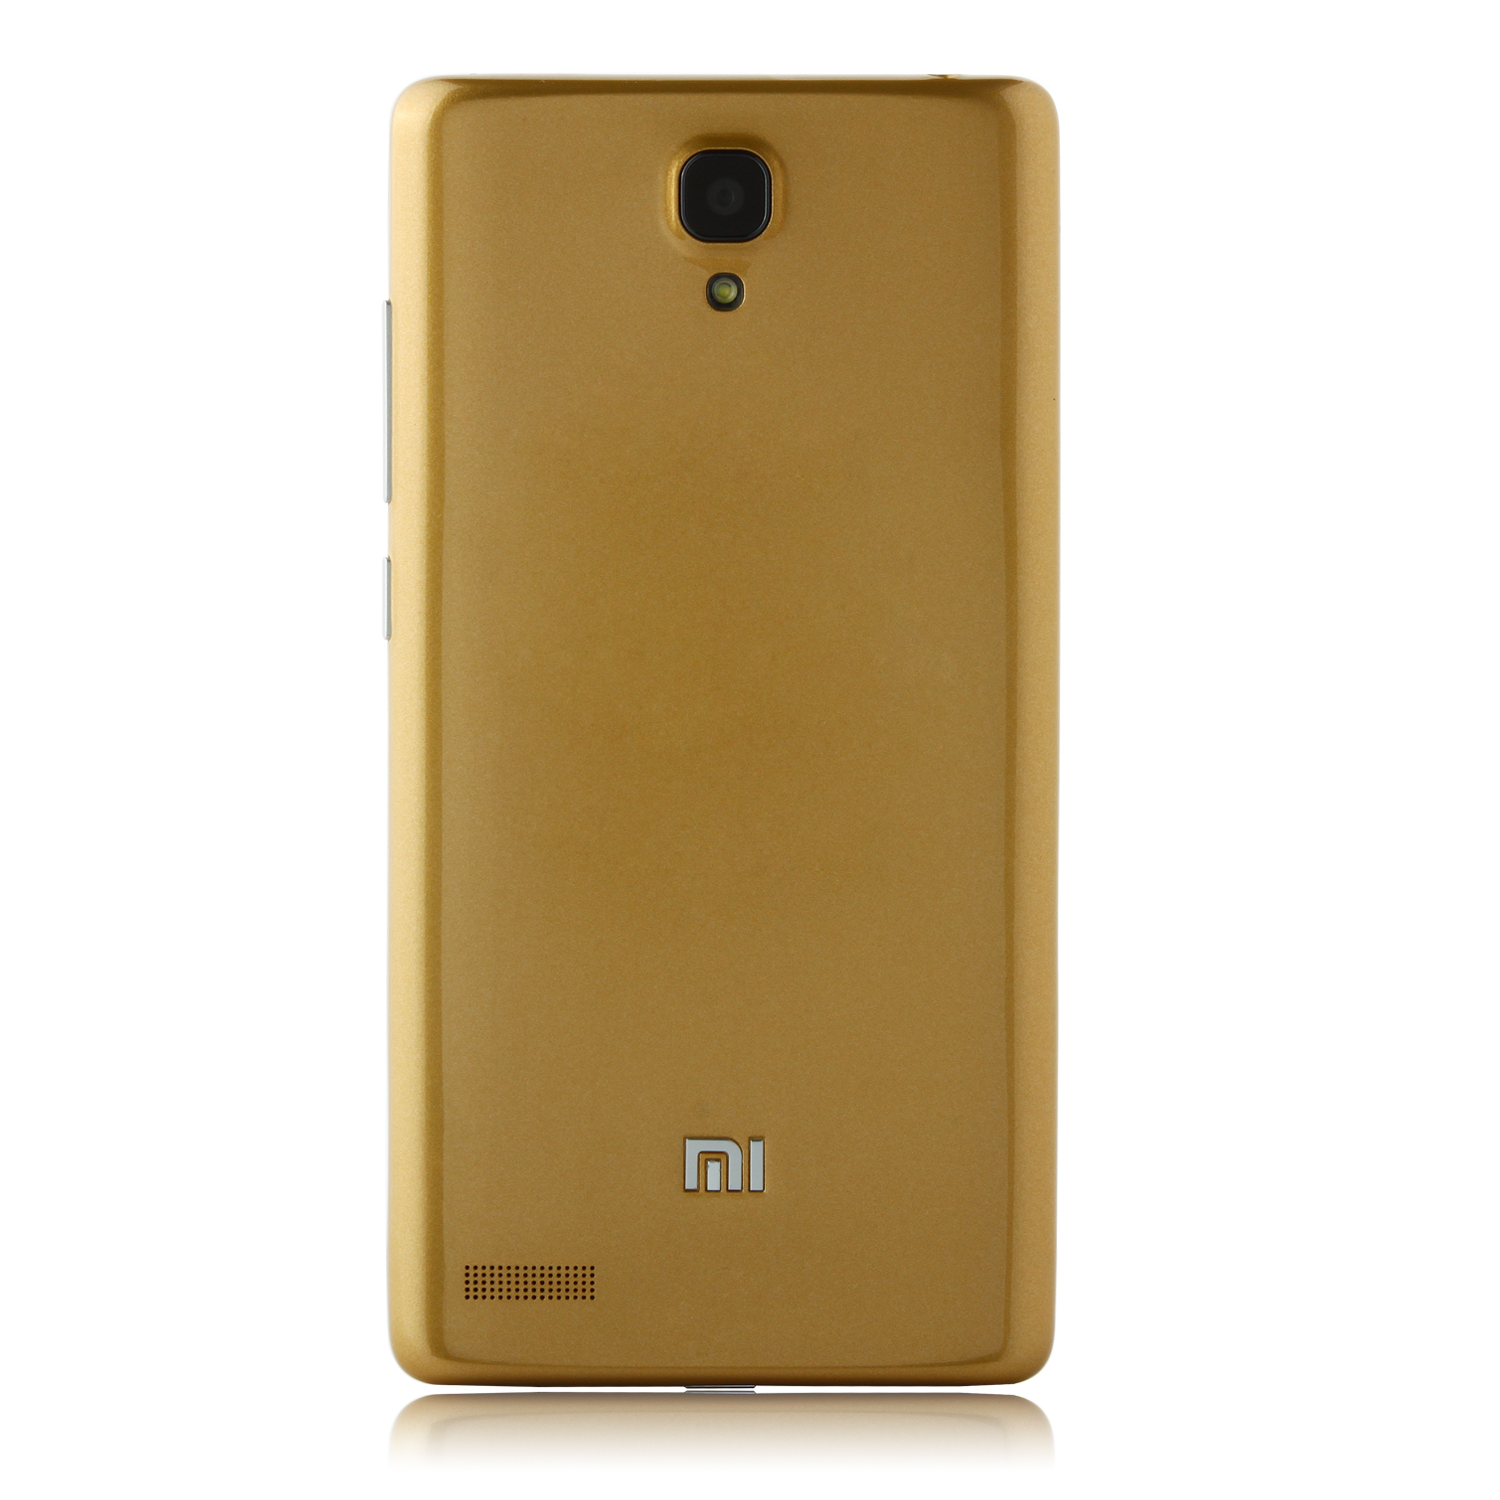 Battery Cover Back Case for XIAOMI Redmi Note Smartphone Golden